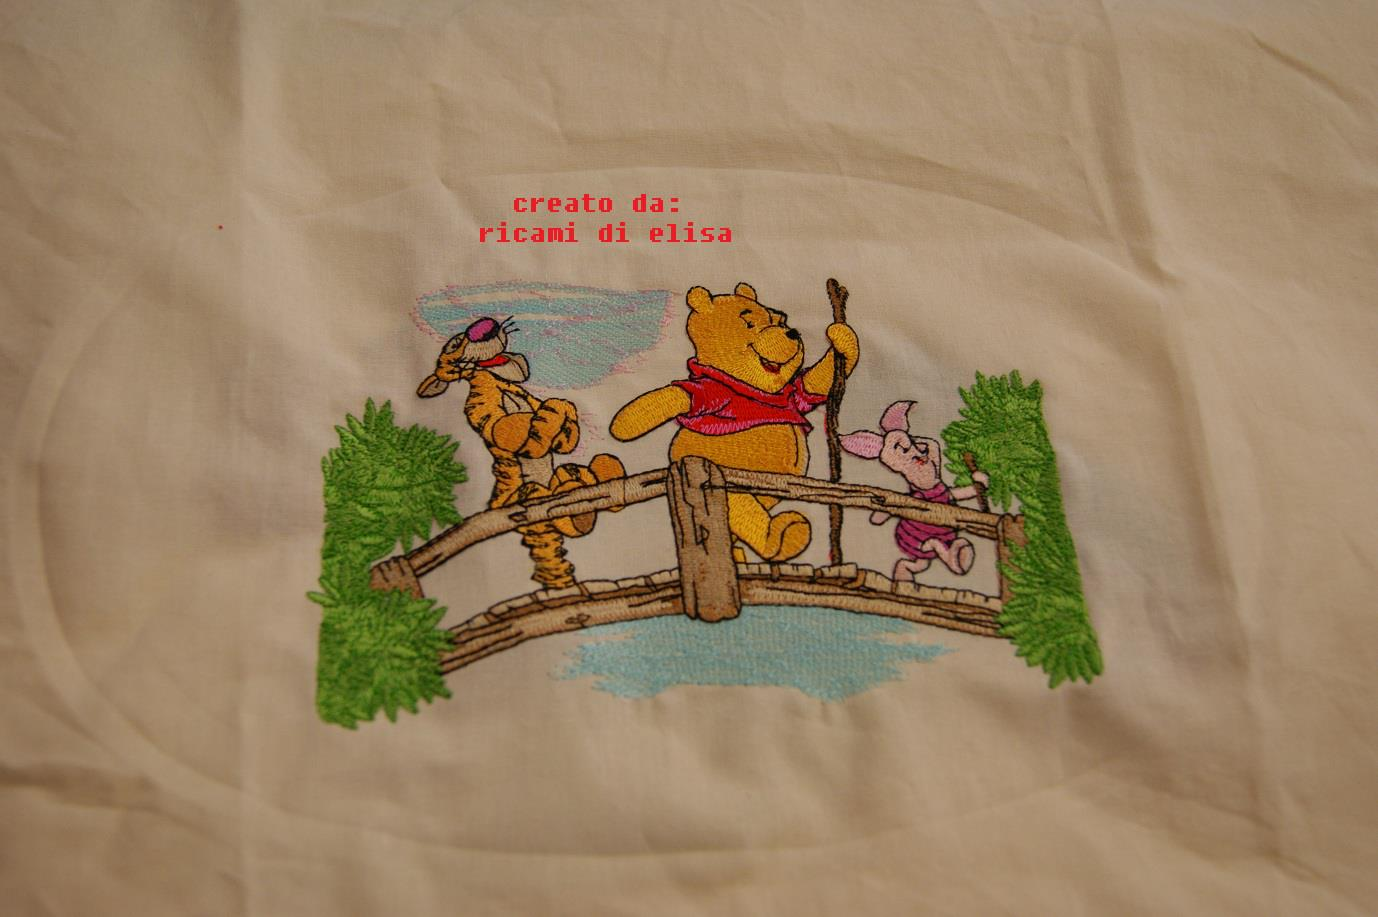 Winnie Pooh, Tigger and Piglet on the bridge design embroidered